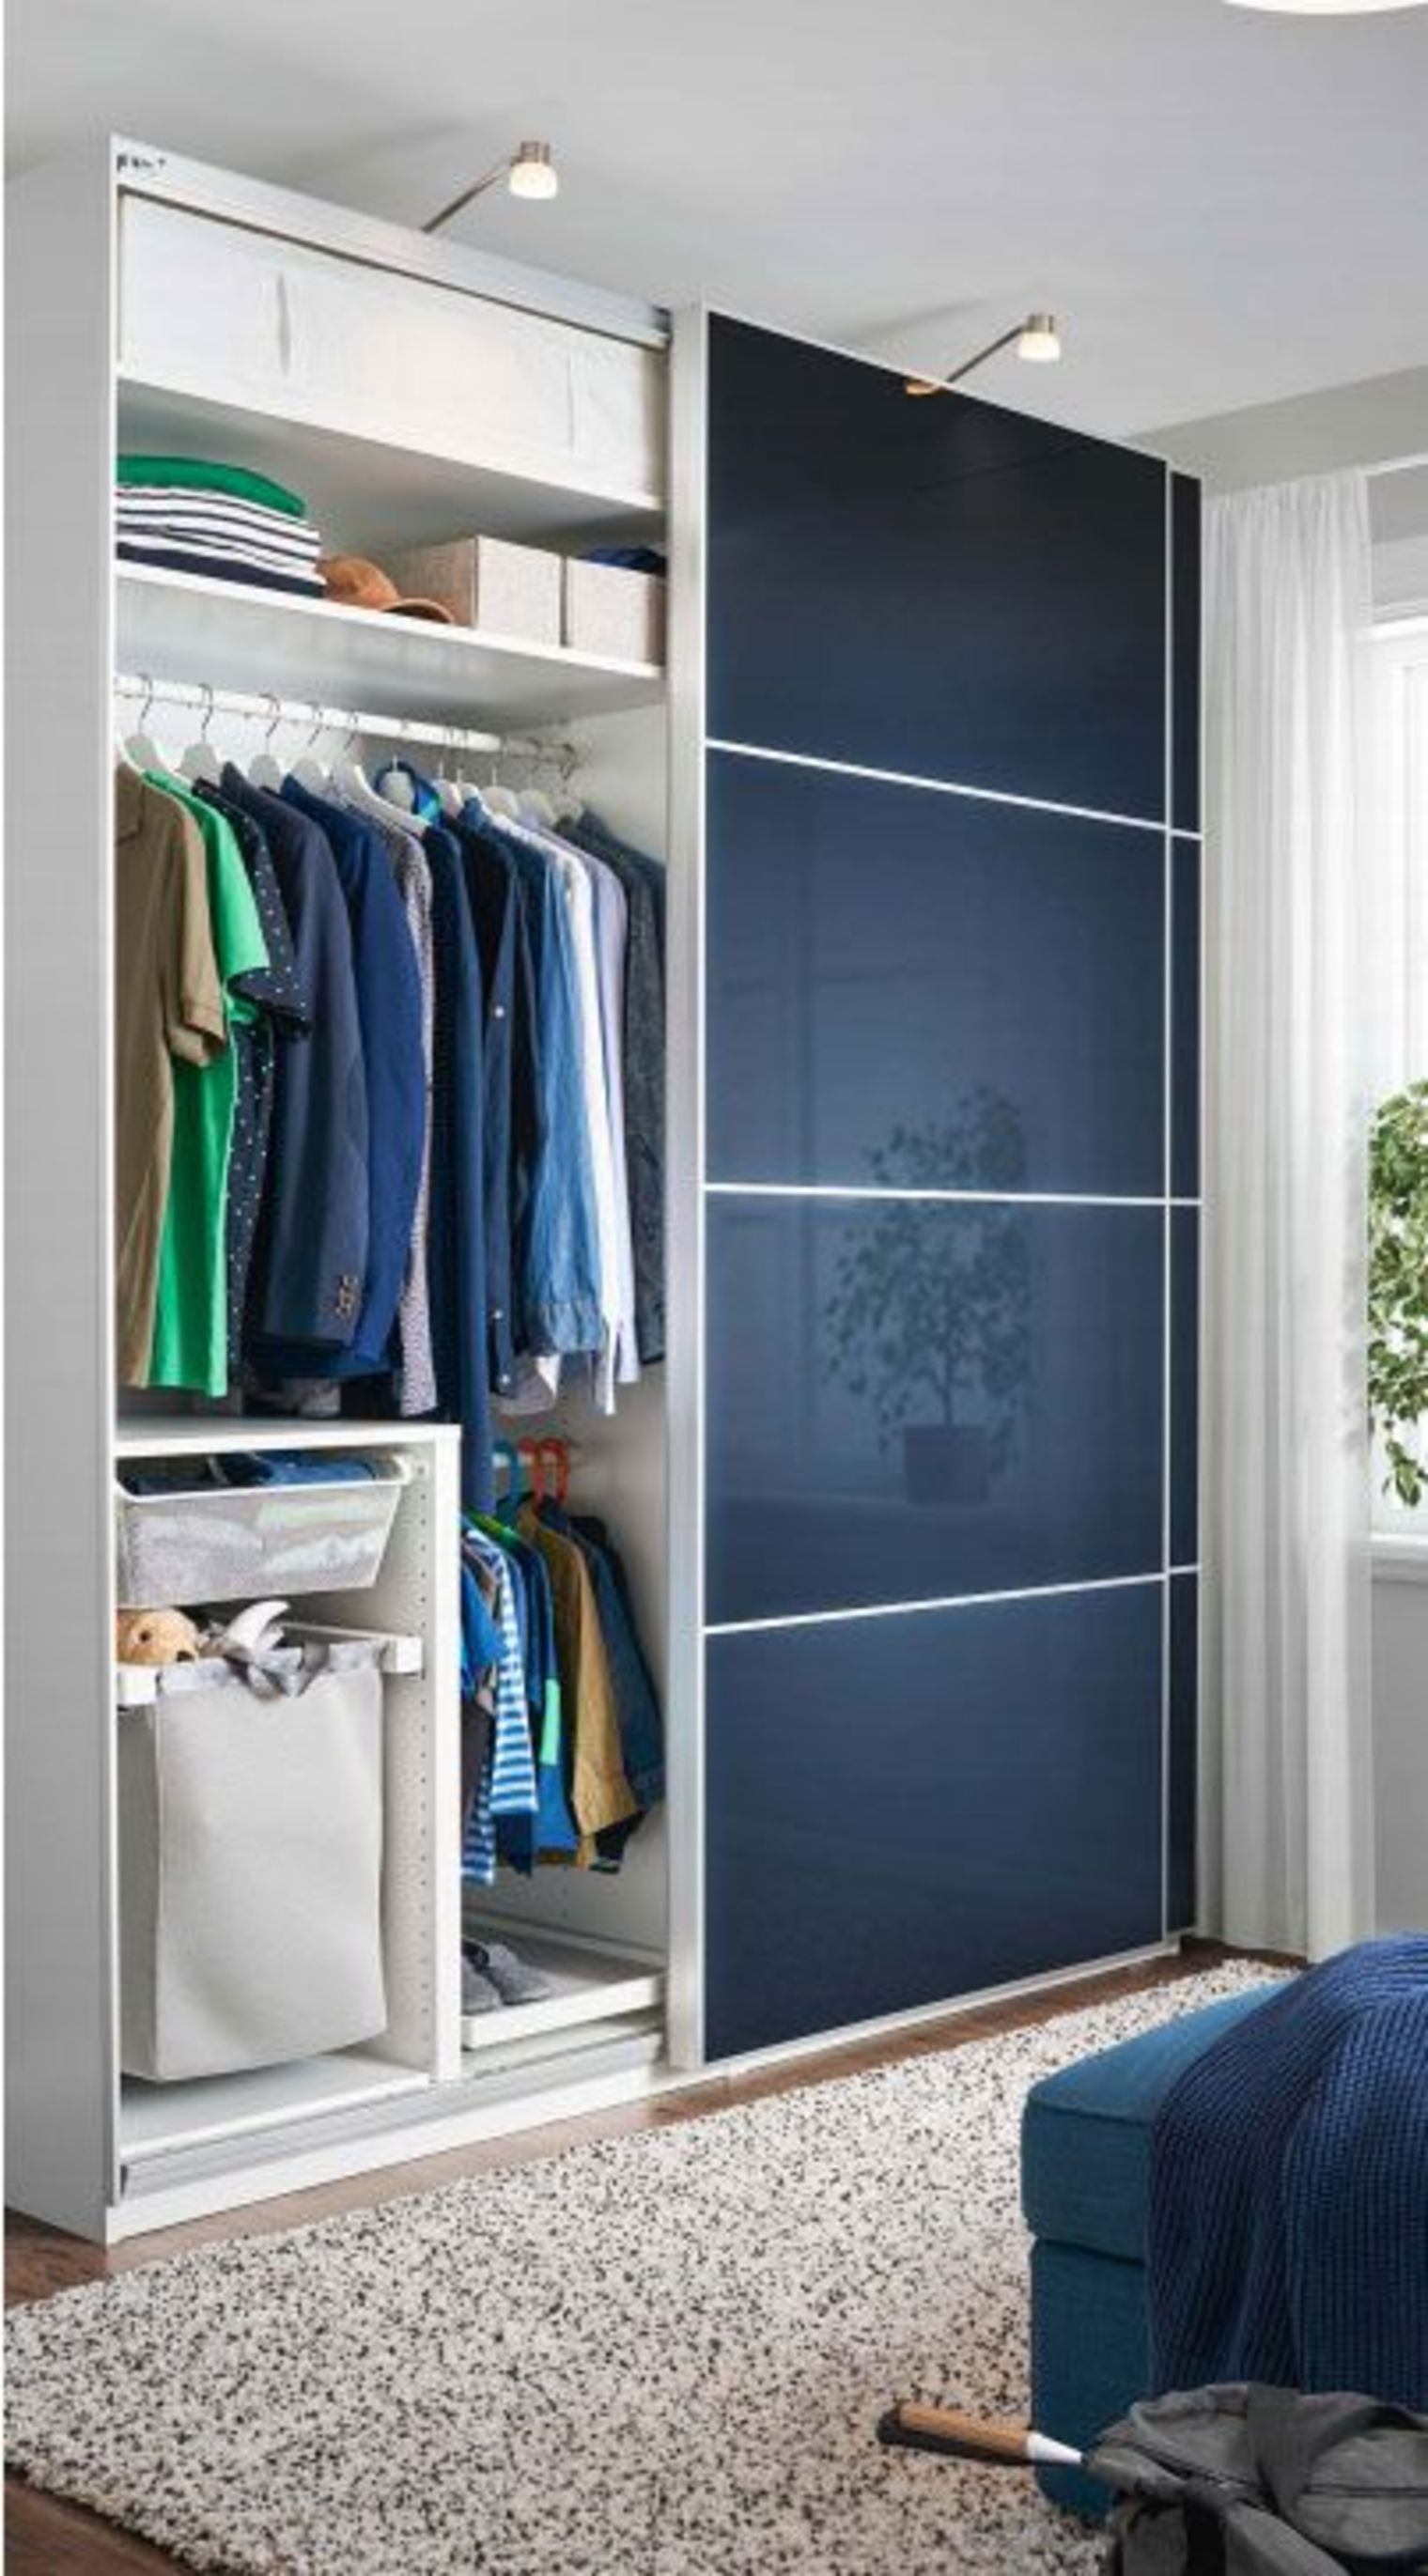 Les Classiques Armoires Pax Armoireplans Fitted Bedroom Furniture Bedroom Armoire Ikea Pax